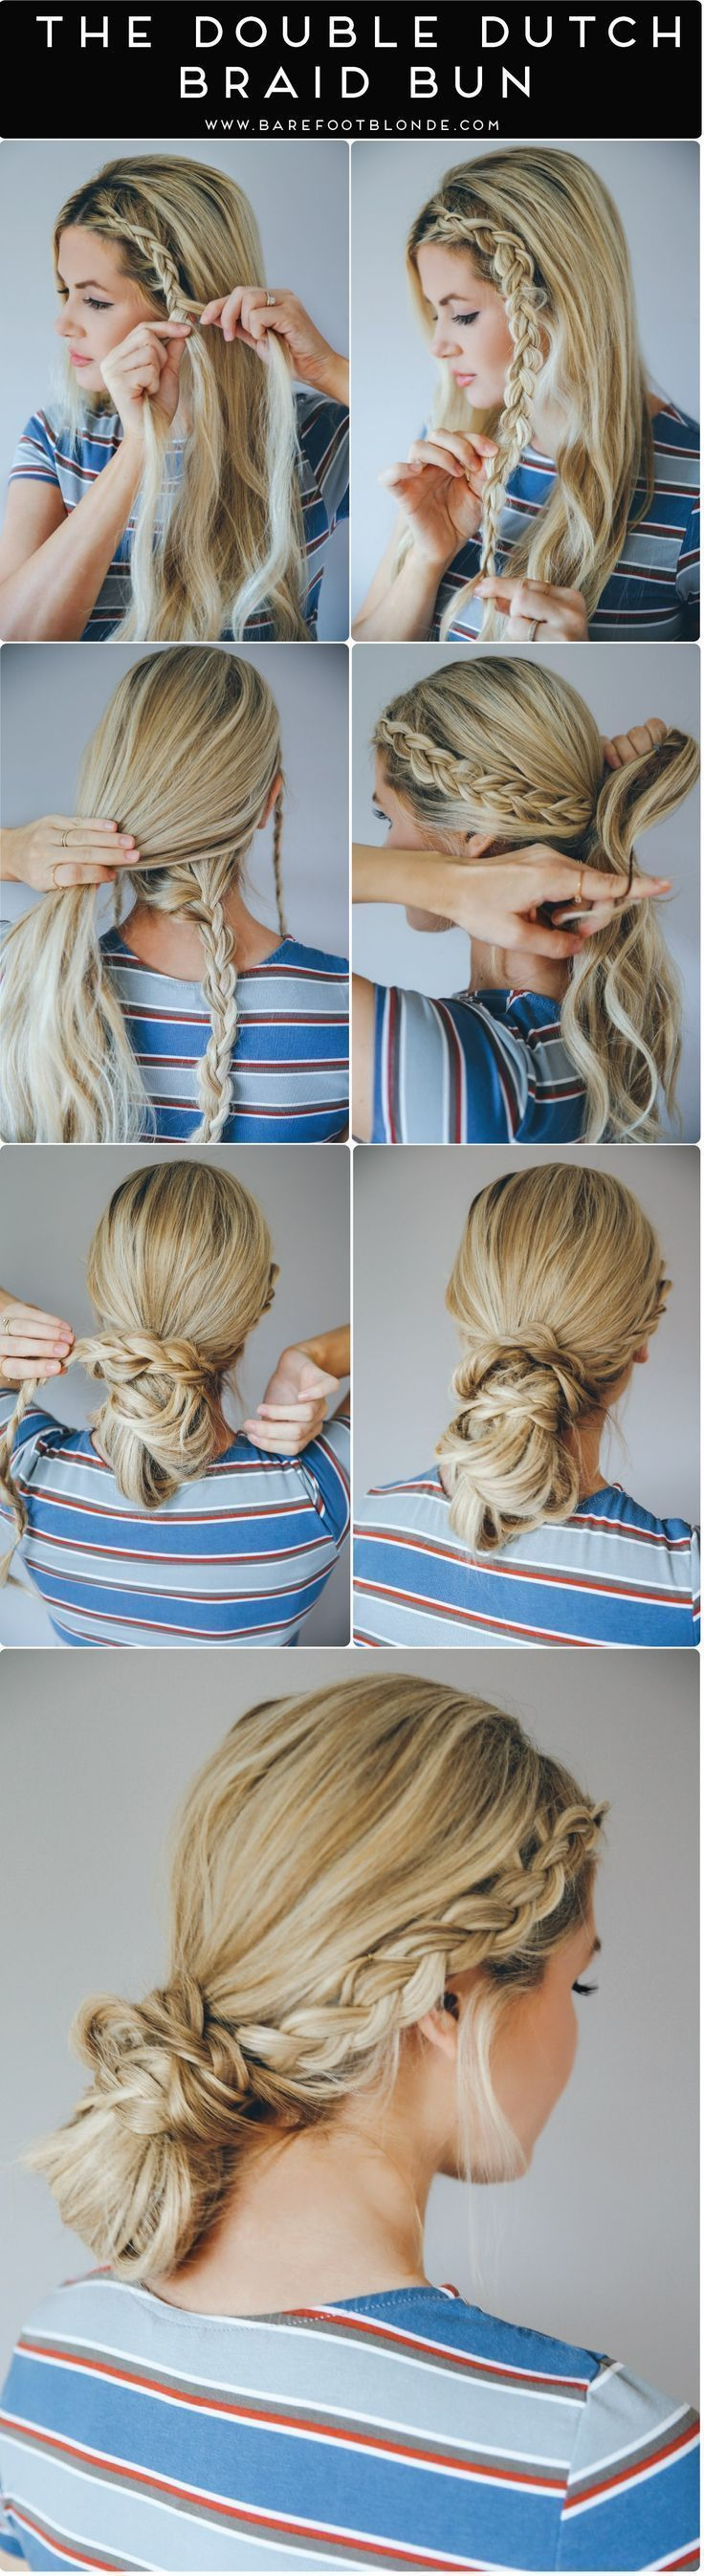 Ha Hair Accessories For Apostolic Long Hair - 8 easy braids that will fix any bad hair day